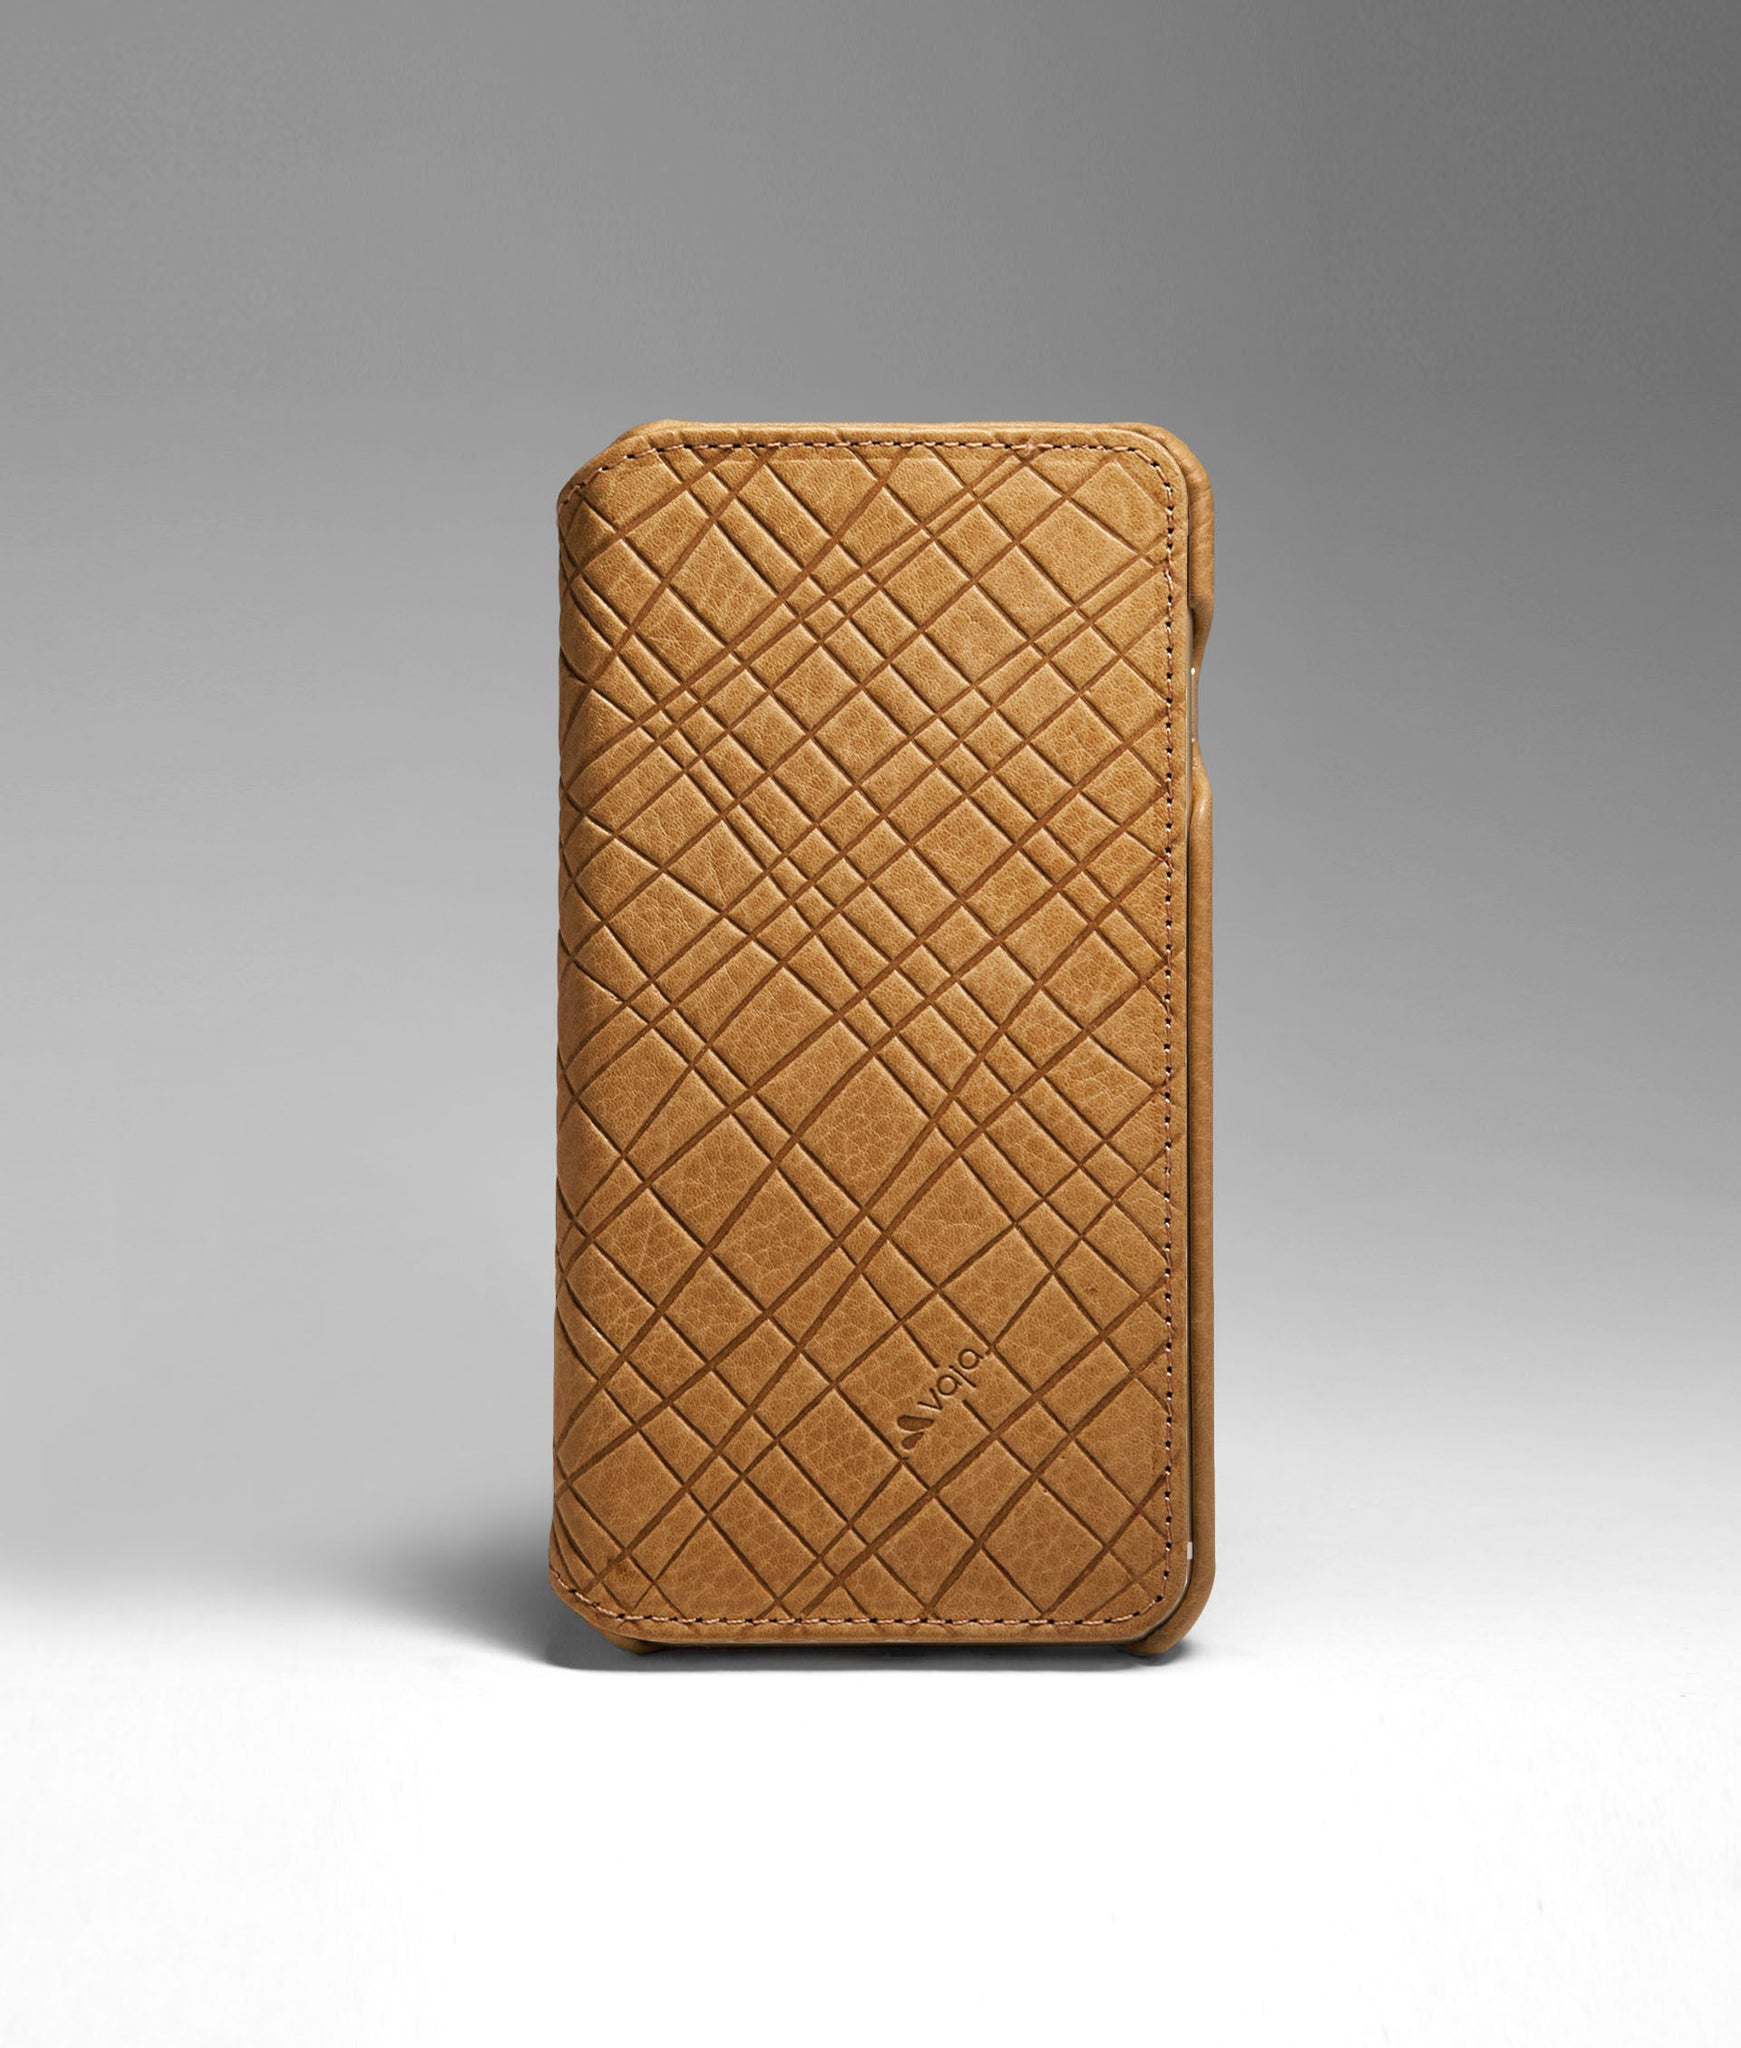 Embossed Leather Agenda